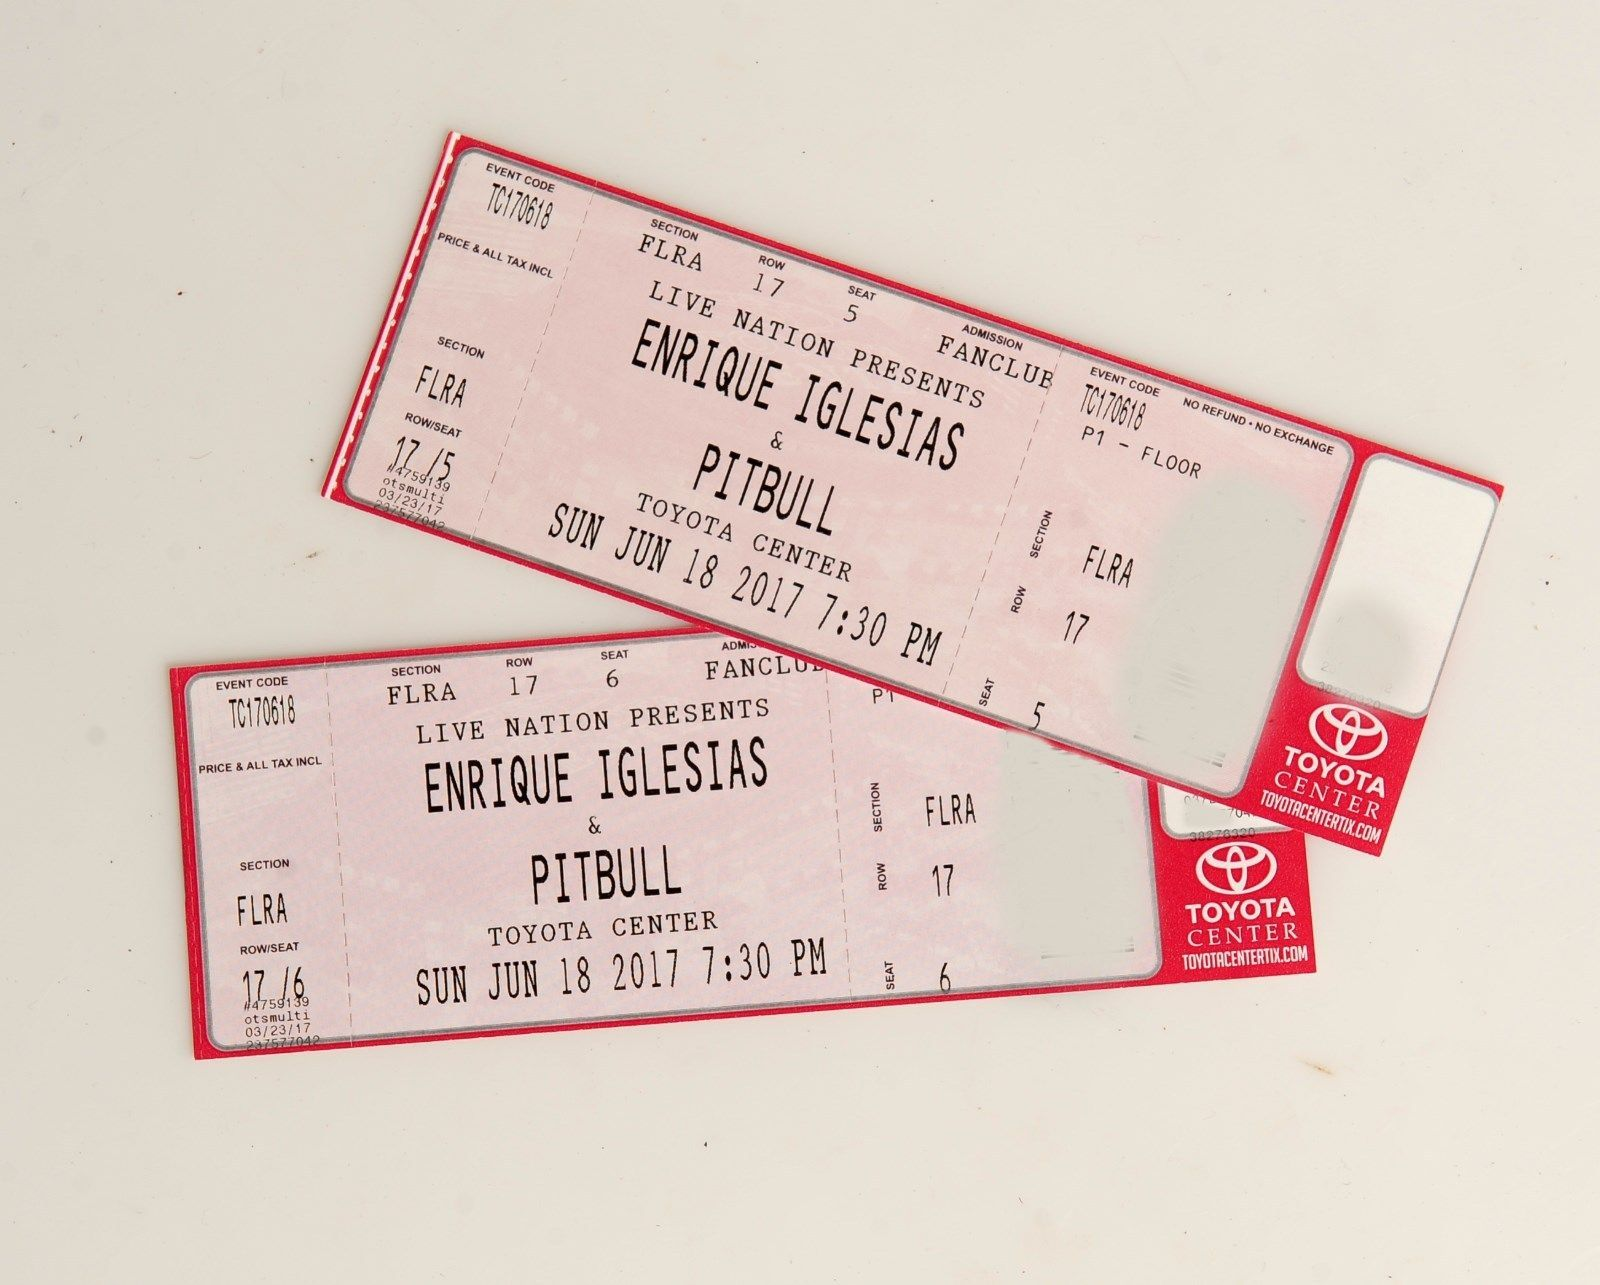 Tickets enrique iglesias pitbull houston toyota ctr for 17th floor concert schedule